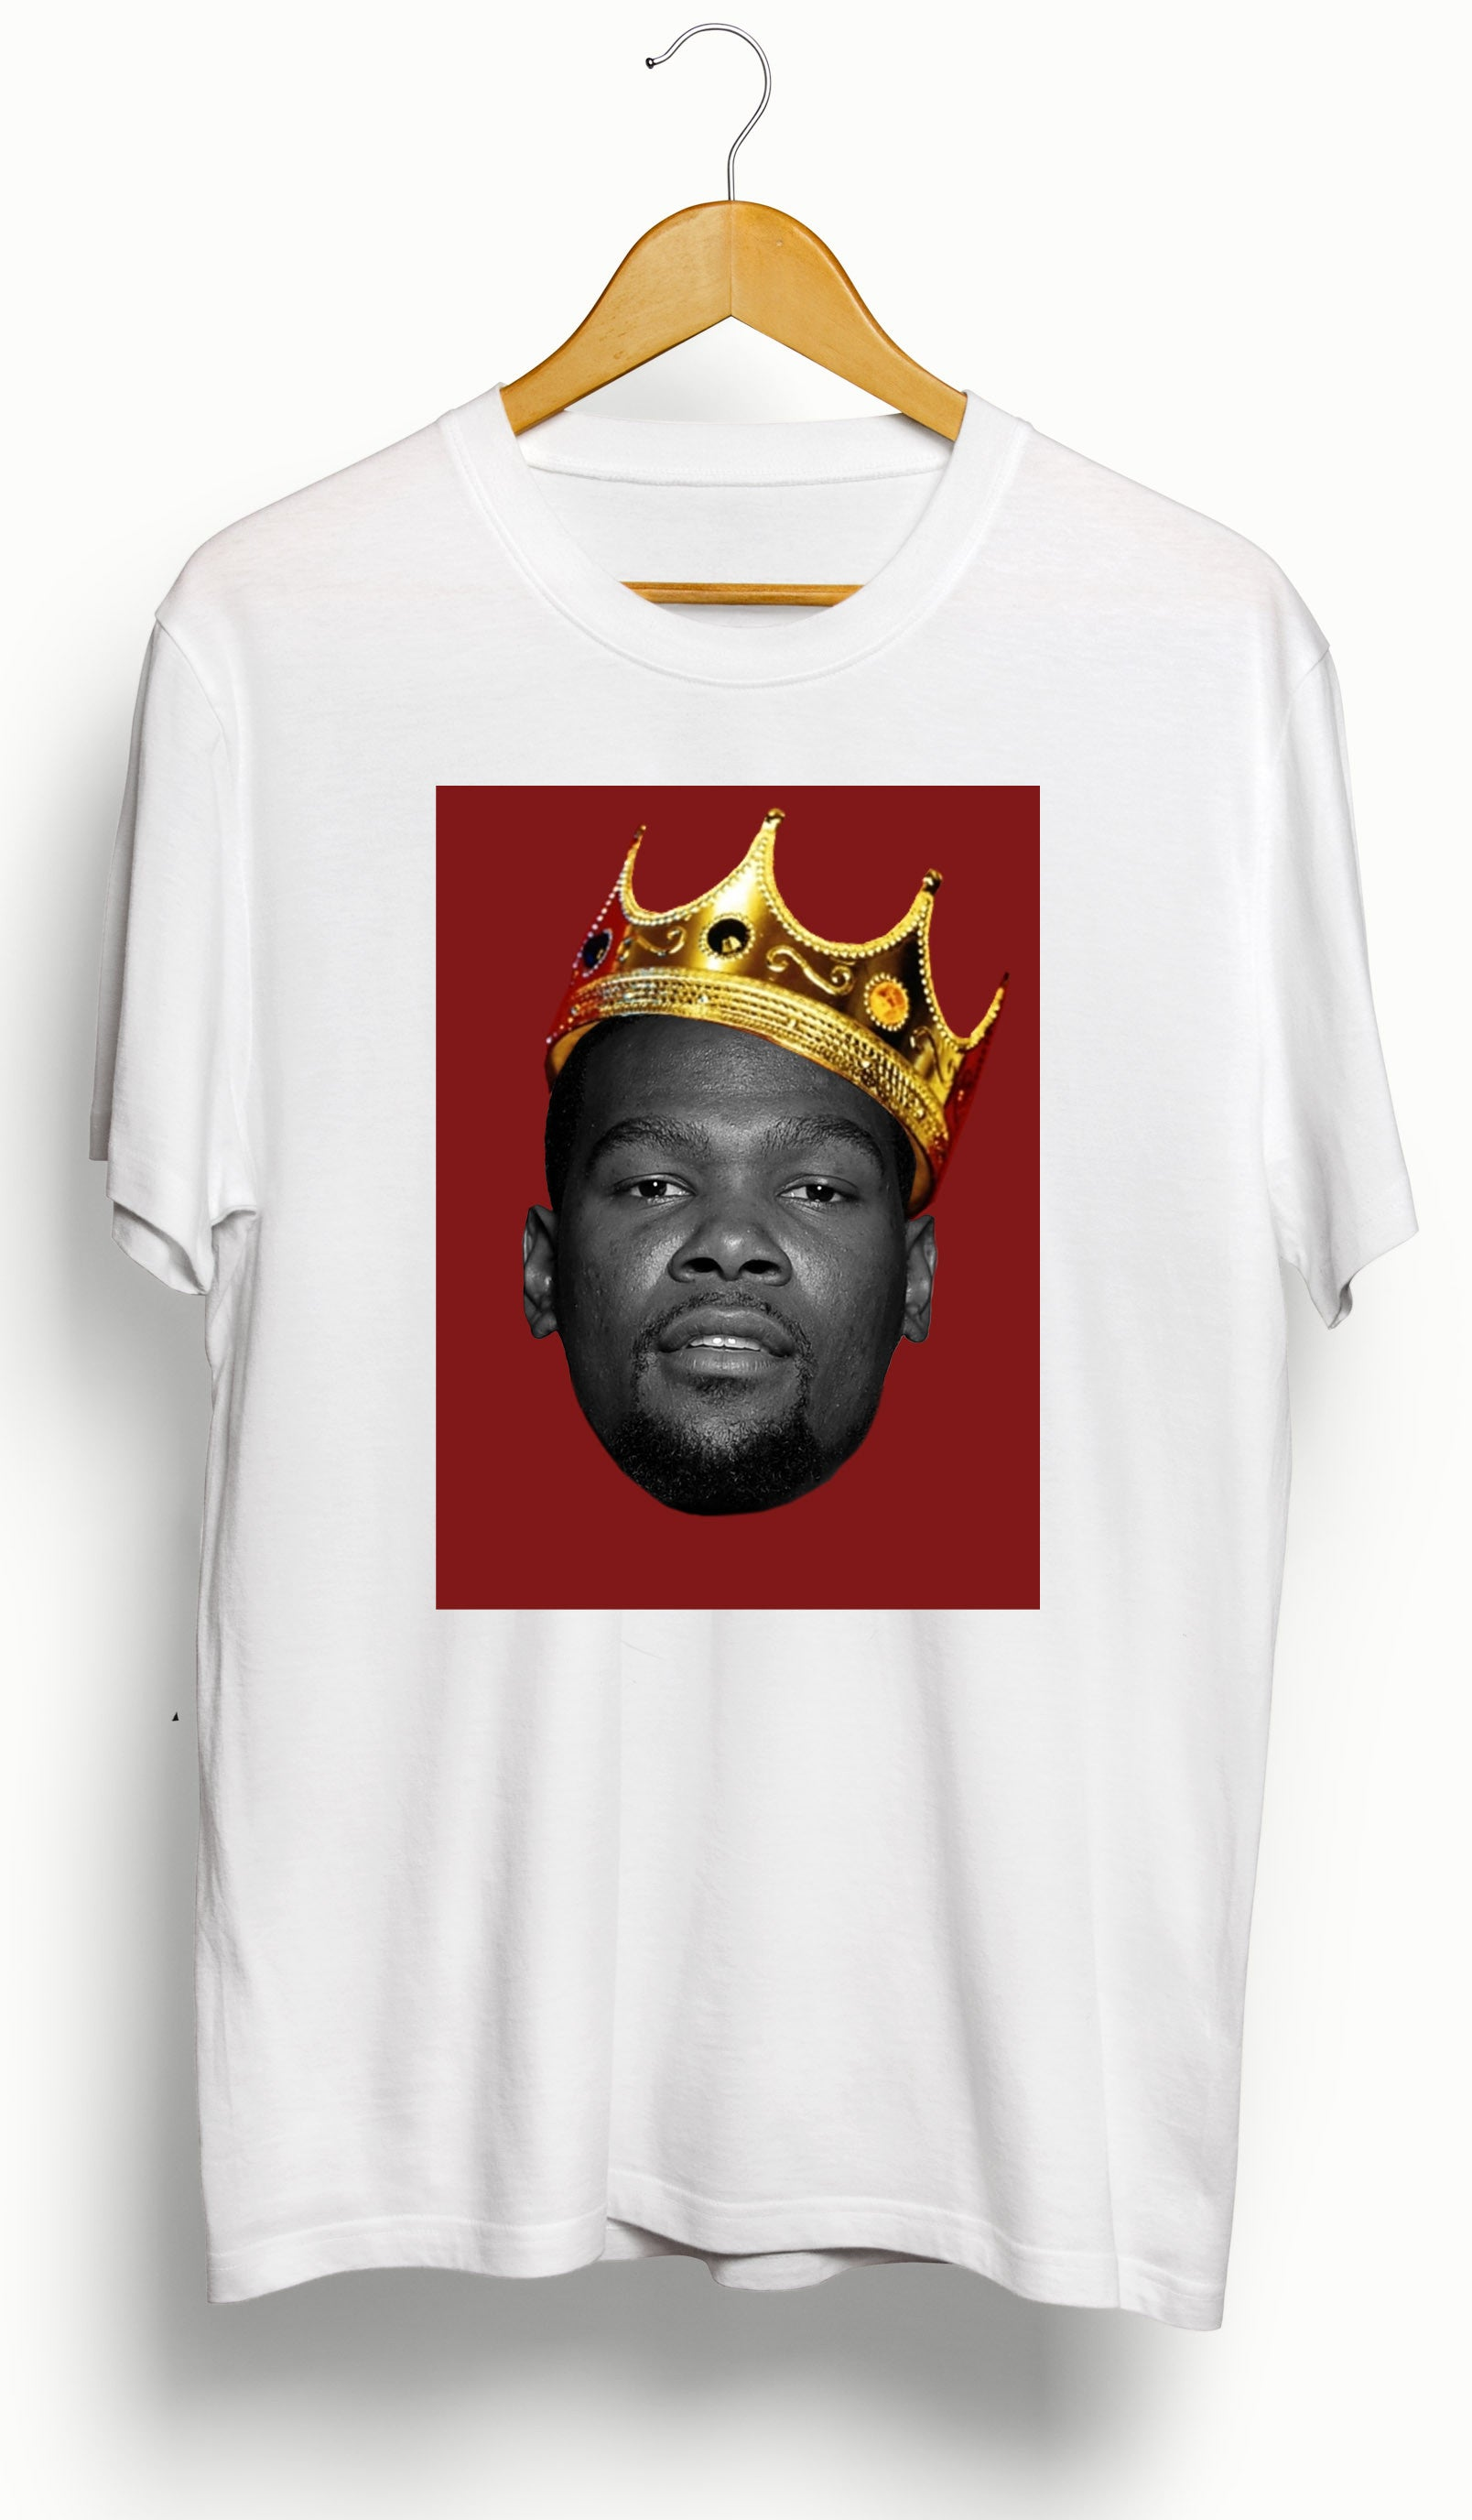 Kevin Durant/KD/Golden State Warriors/Biggie King T-Shirt - Ourt